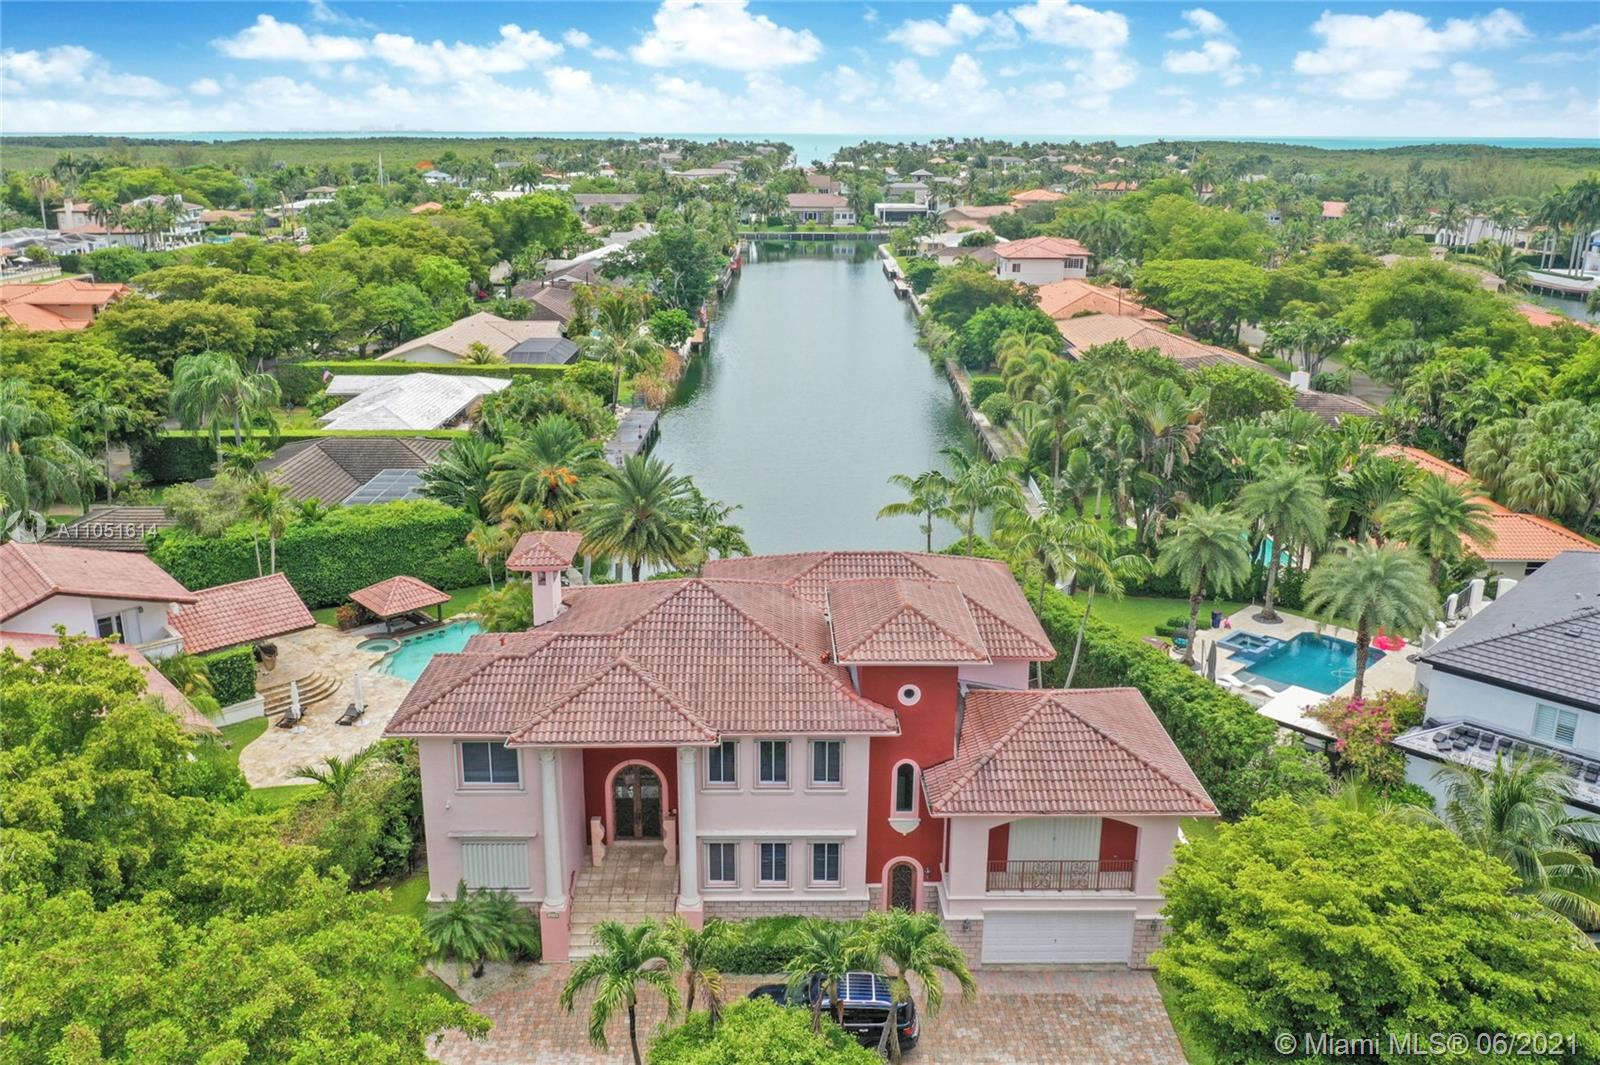 One of only a few end lot homes in Gables by the Sea, this grand 4,407 SF home sits at the end of the waterway with lush landscaping for the ultimate in waterfront privacy. At 12,500 SF, the lot is open and sunny, with water views in the backyard, a beautiful infinity edge pool, and large covered terraces both upstairs and downstairs for outdoor entertaining.  Inside, the spacious home boasts 12 foot ceilings, a large eat in kitchen that connects to the family room, formal living and dining rooms, and a separate game room. Each of the home's 5 bedrooms has its own en-suite bath, and an upstairs laundry room & kitchenette provide the ultimate in convenience. Gorgeous 2 story Mediterranean style home built in 2002 offers great frontage on Red Road w/quick access in & out of the neighborhood.